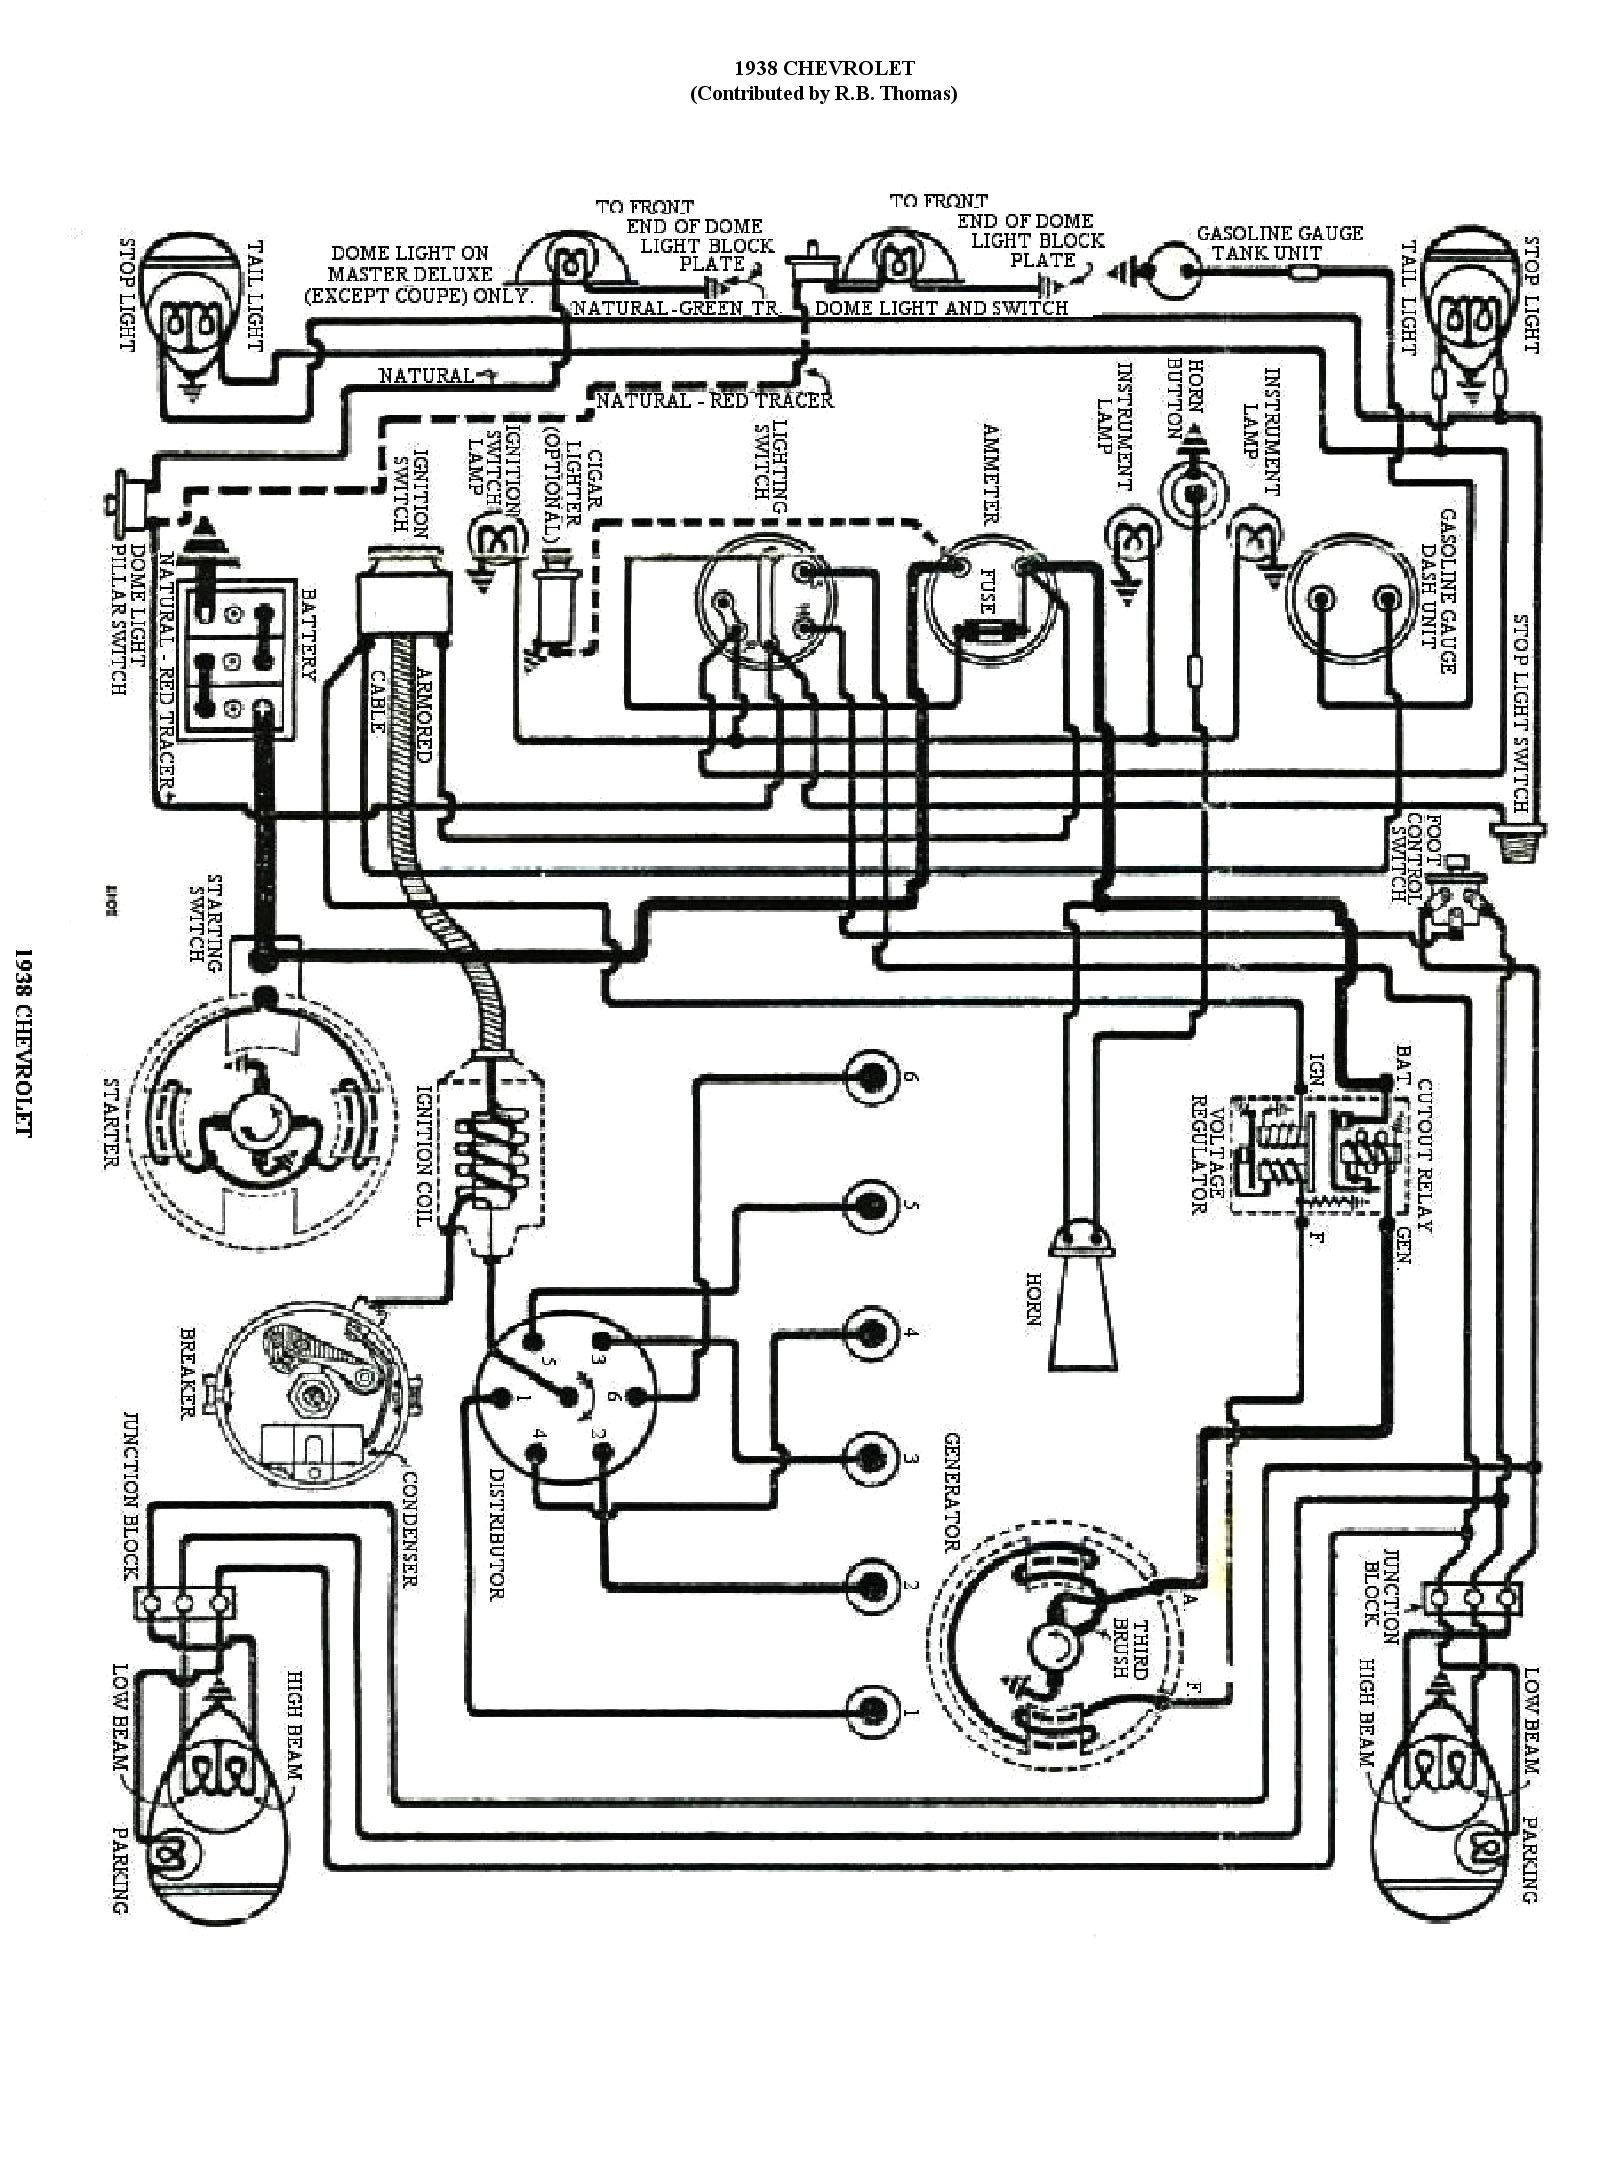 1989 Buick Riviera Wiring Diagram Wire Center Park Avenue 1941 Diy Enthusiasts Diagrams U2022 Rh Broadwaycomputers Us 96